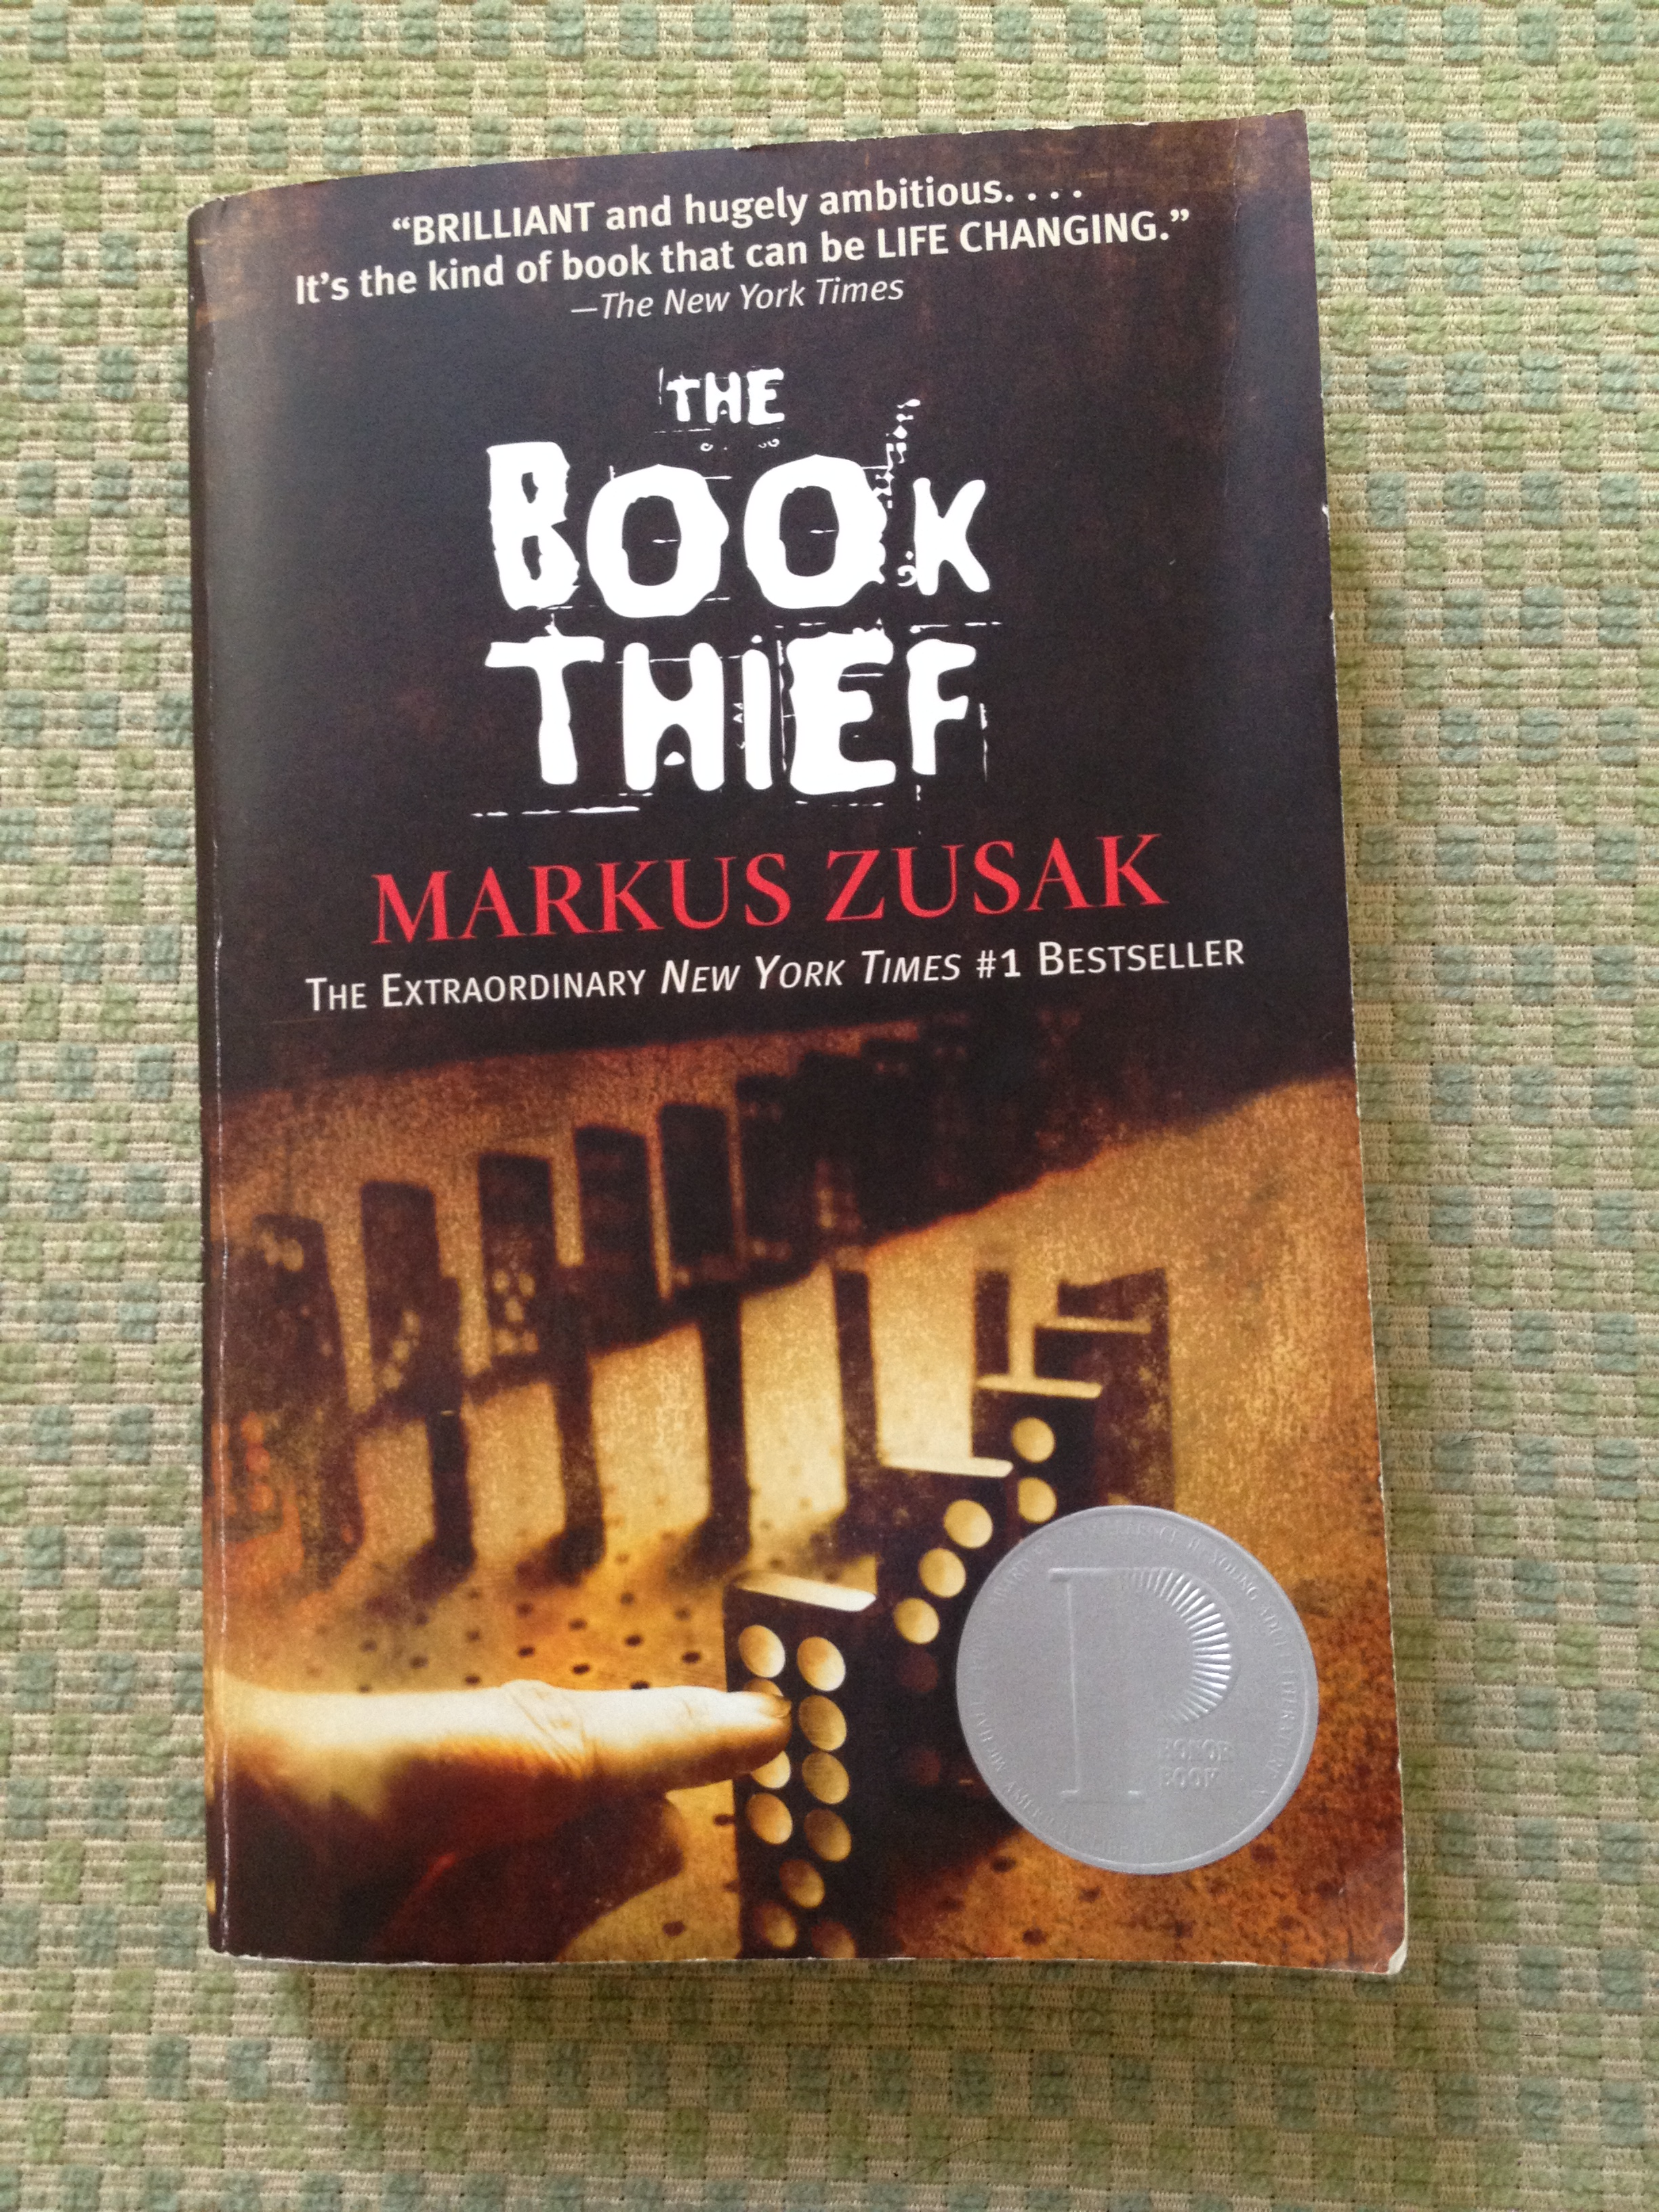 power of words essay the book thief Essay - setting and theme connections in the book thief written by markus zusak, many key settings are used to help me understand the idea of the power of.